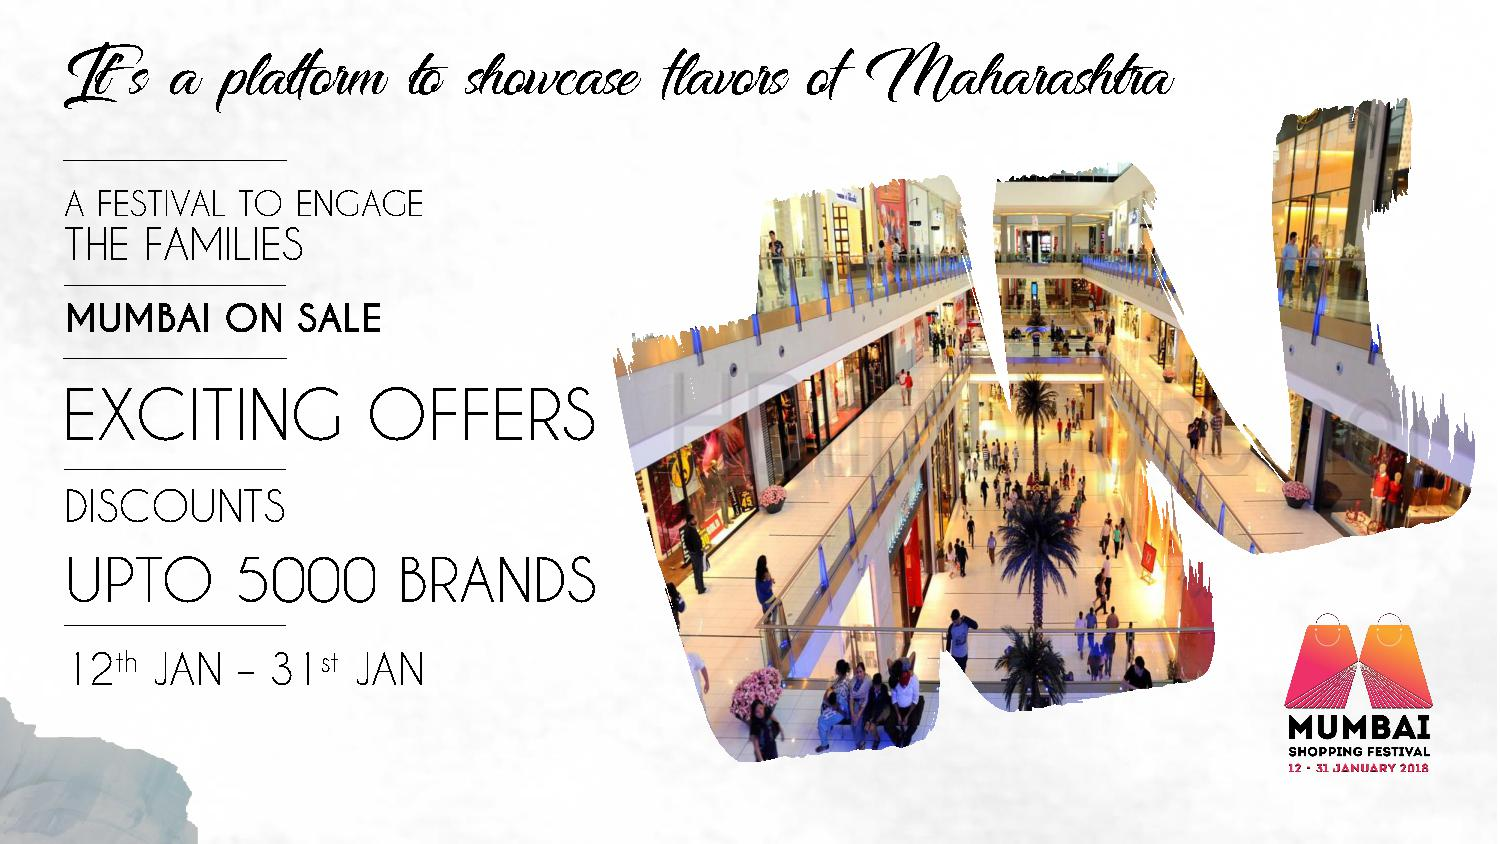 It's a platform to showcase flavors of Maharashtra A FESTIVAL TO ENGAGE THE FAMILIES MUMBAI ON SALE EXCITING OFFERS DISCOUNTS UPTO 5000 BRANDS 12th JAN – 31st JAN